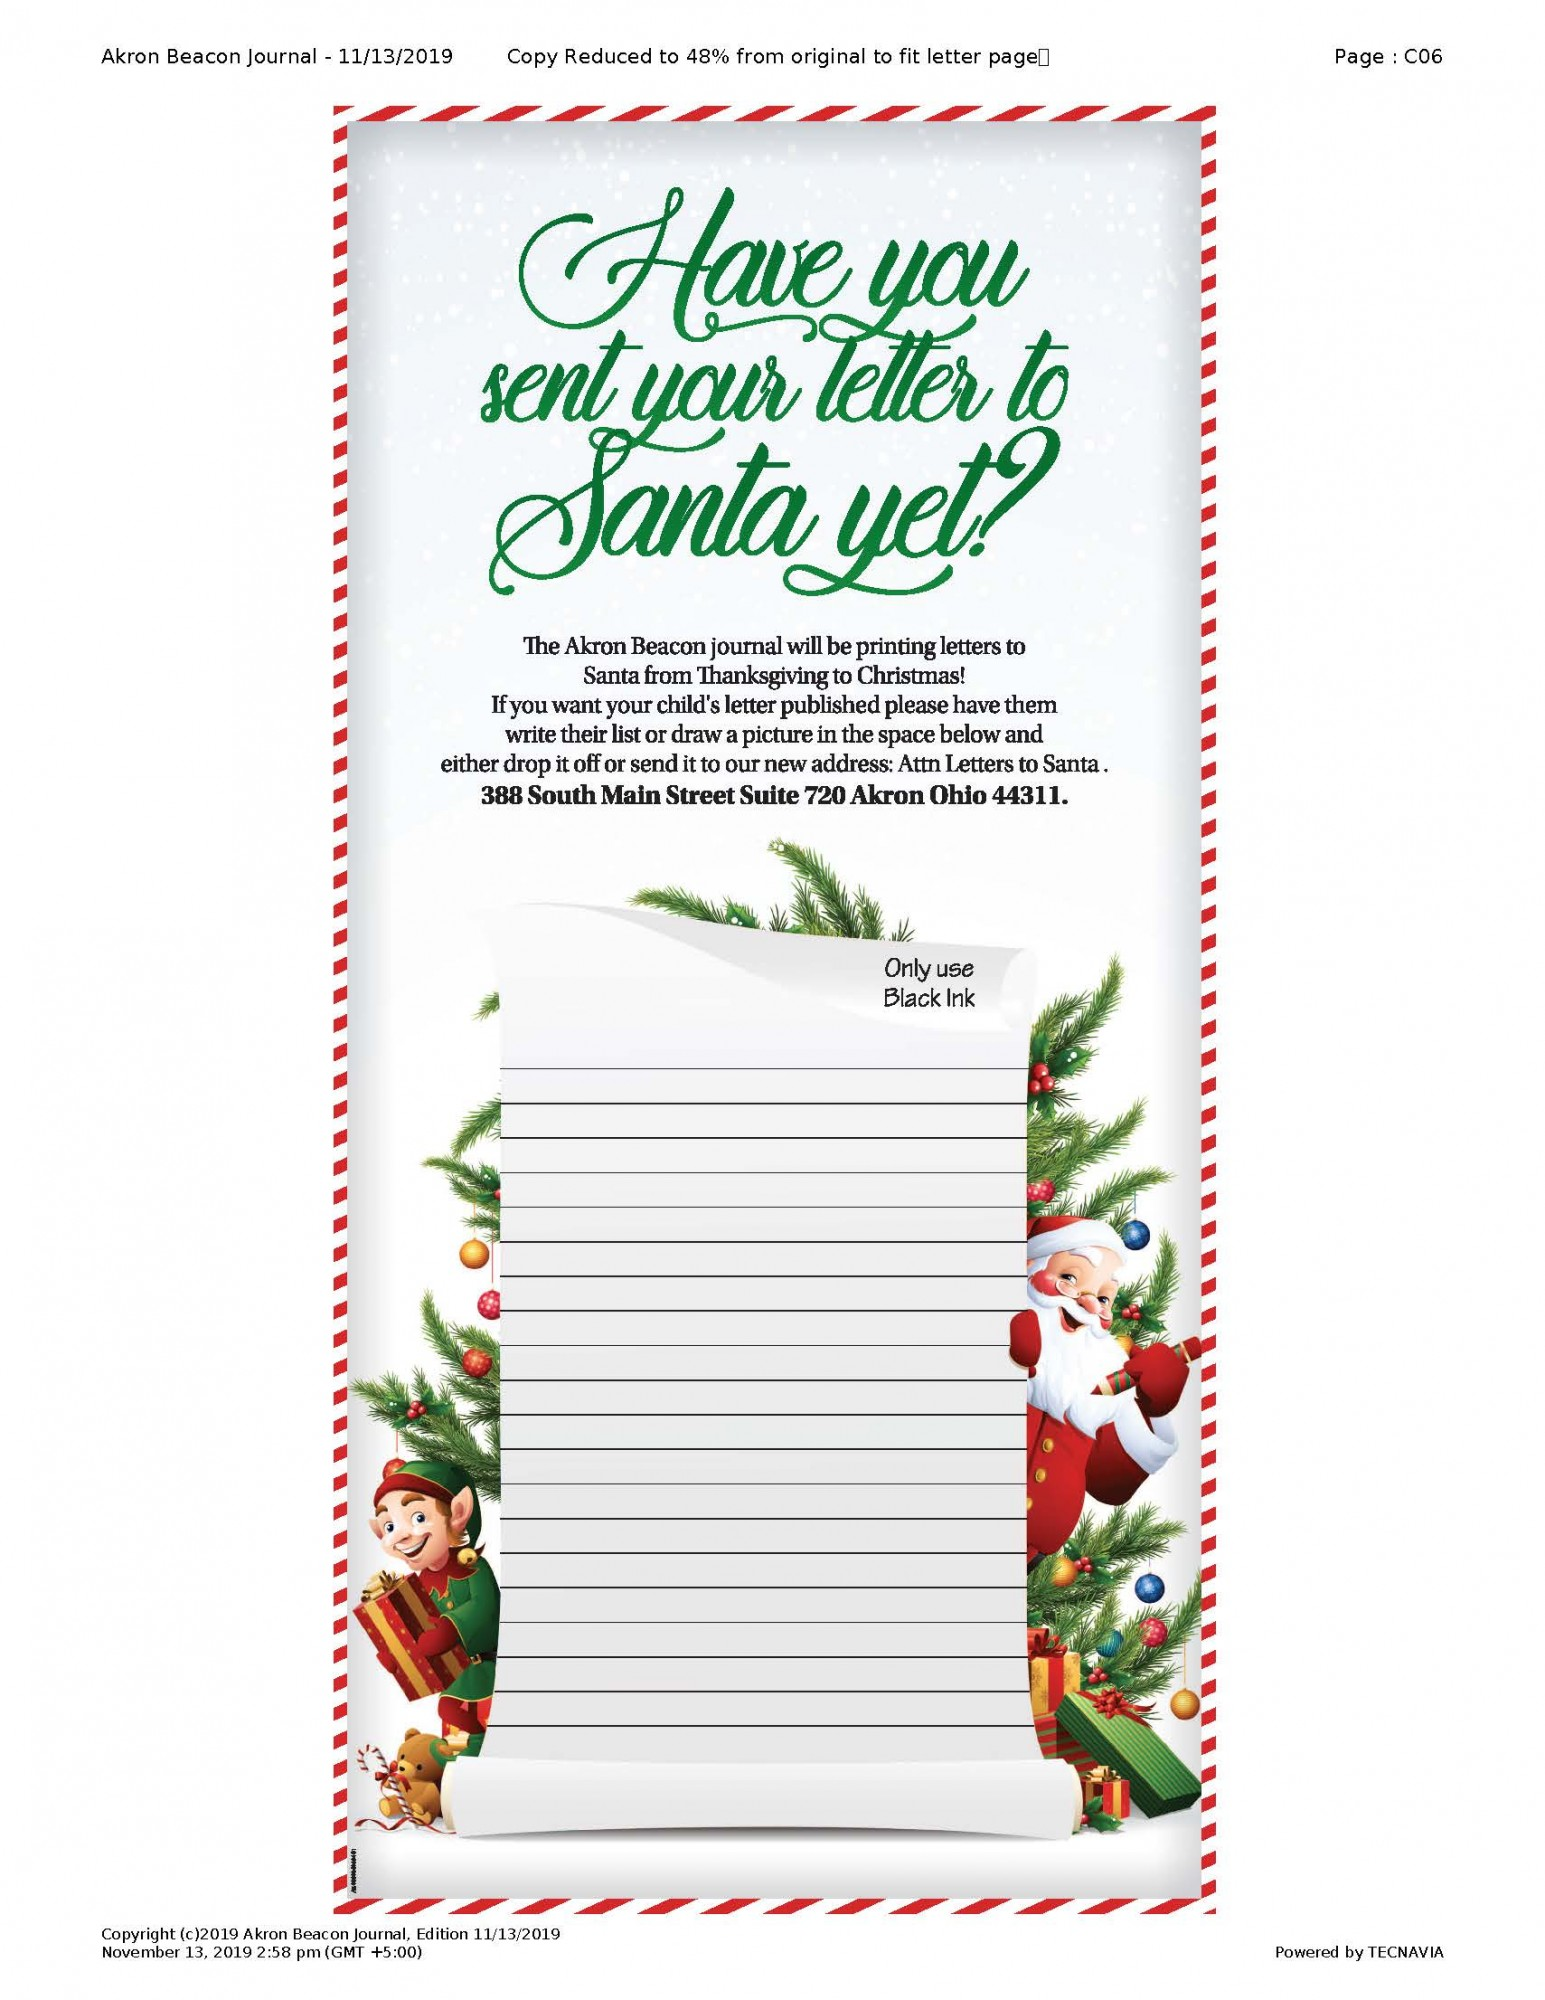 Have you sent your letter to Santa yet?